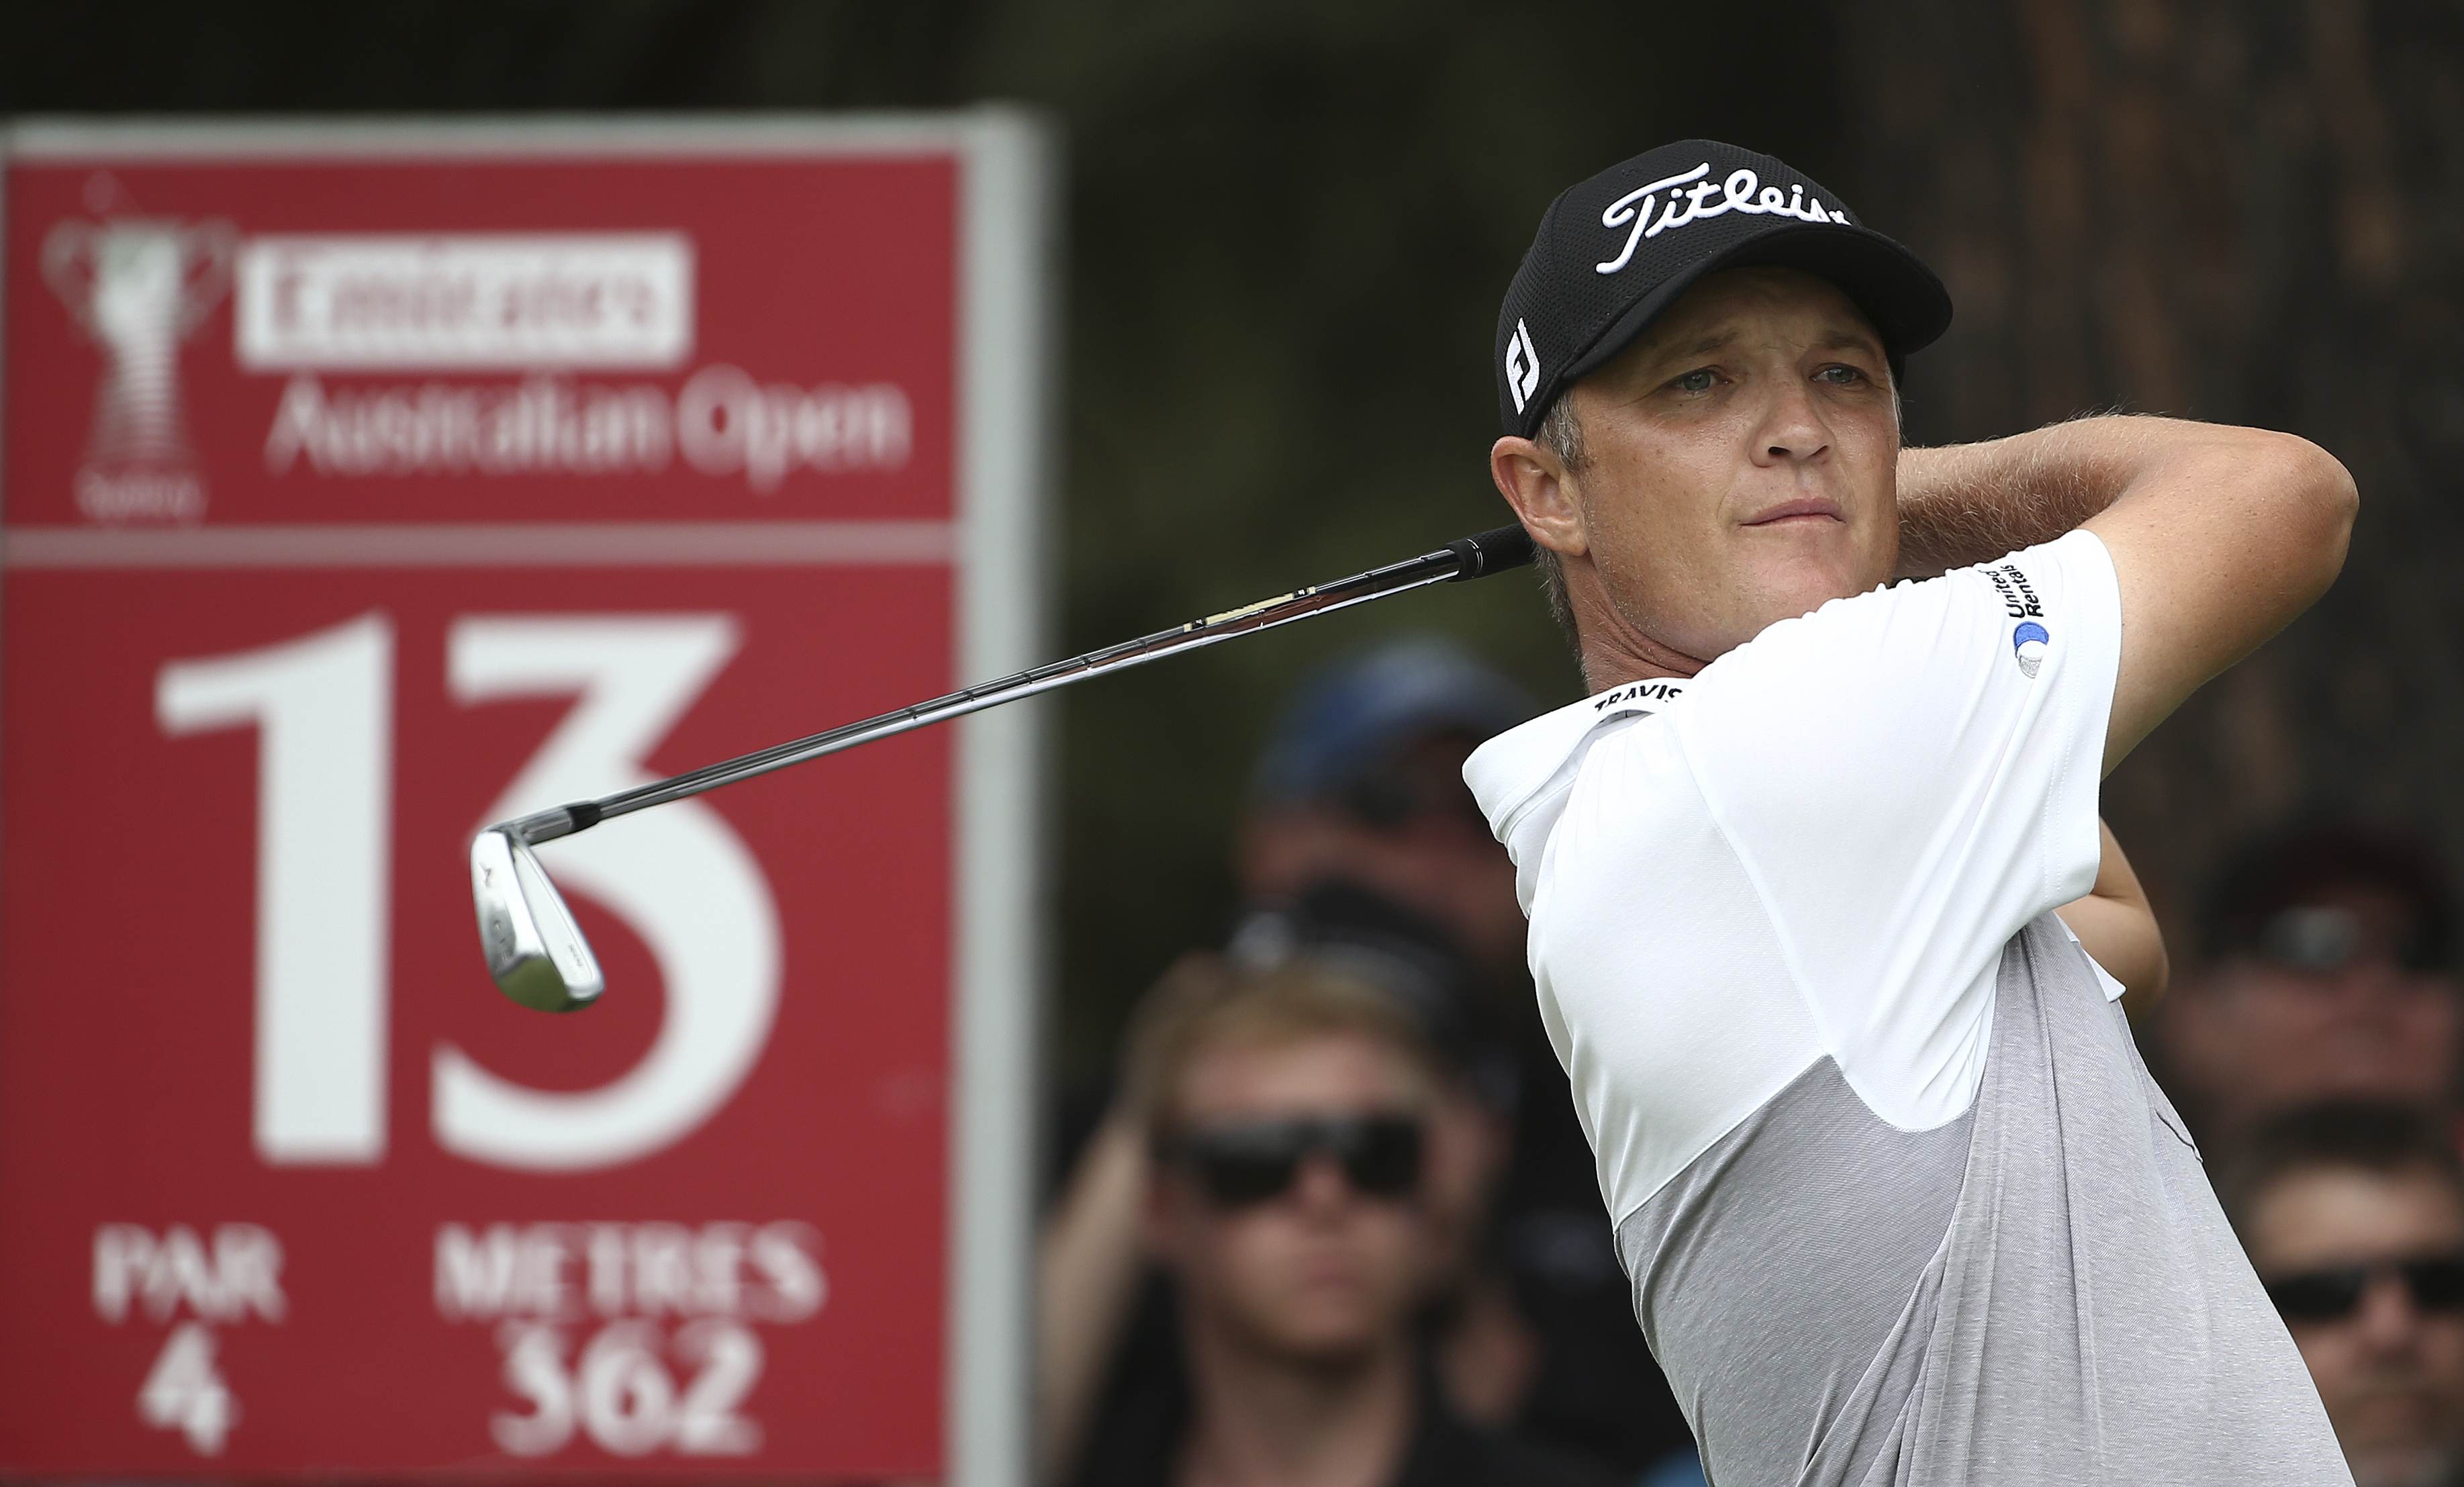 Matthew Jones of Australia tees off on the 13th hole during the Australian Open golf tournament in Sydney Saturday, Nov. 28, 2015. (AP Photo/Rob Griffith)